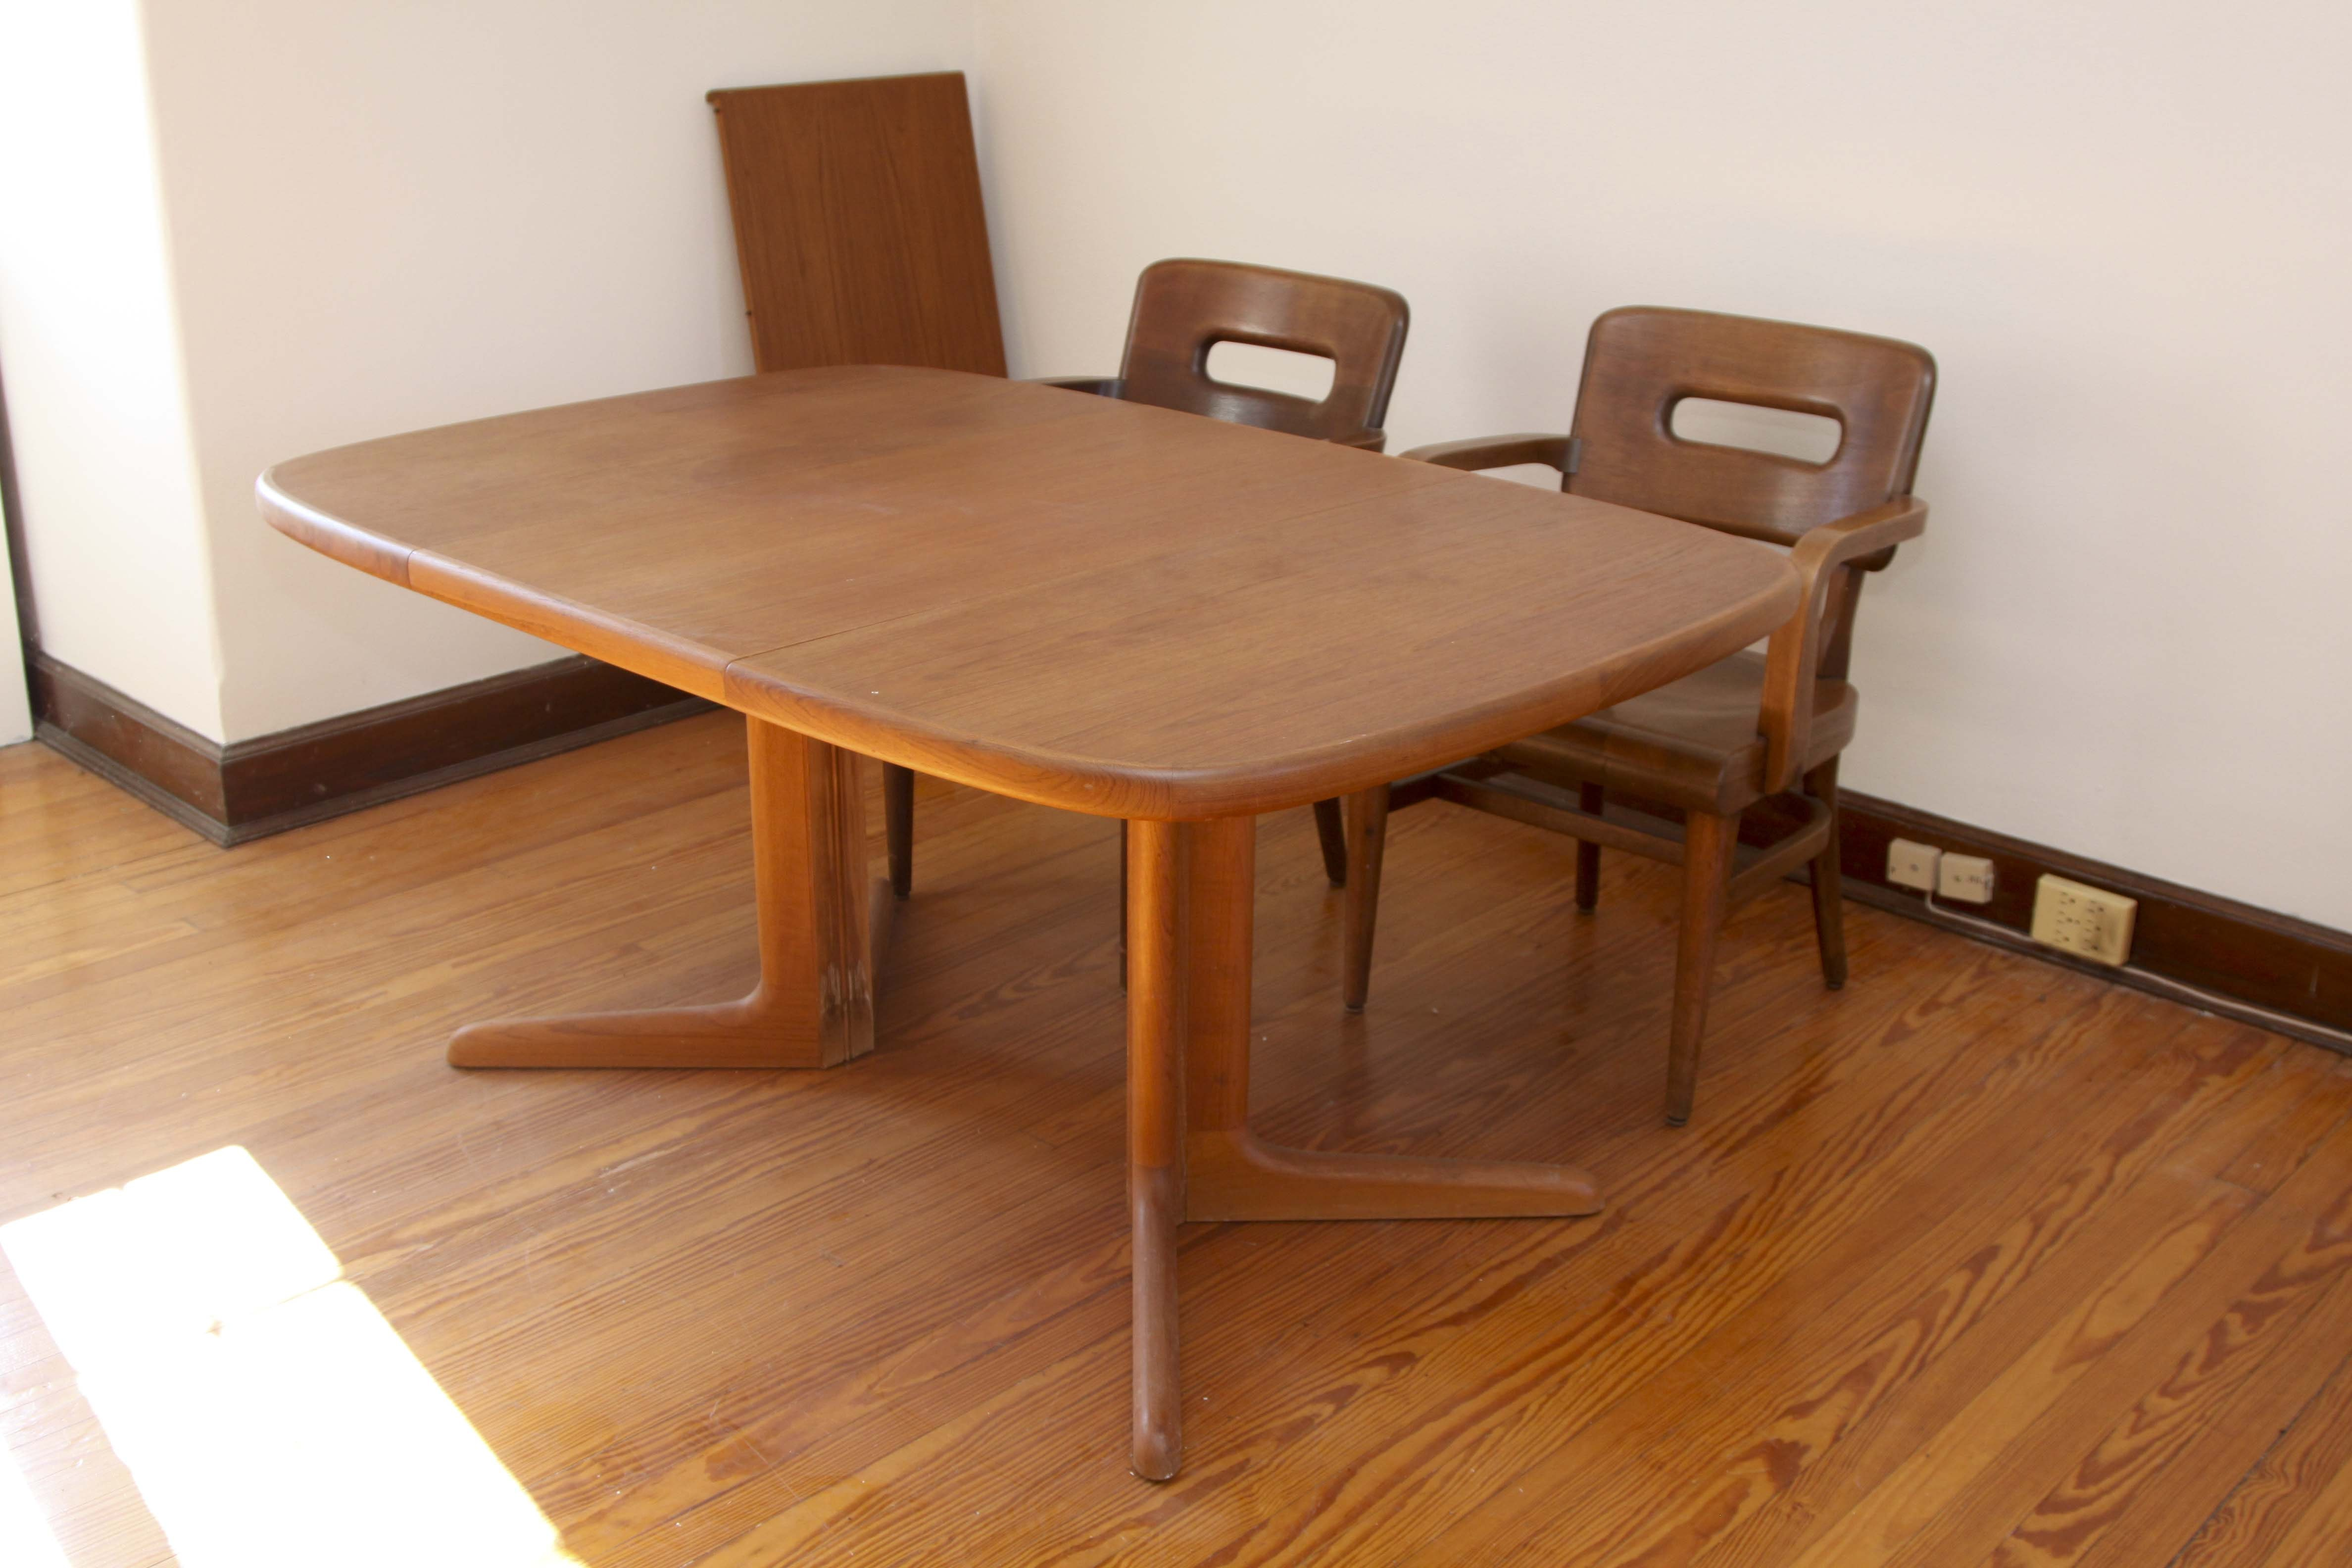 Danish Modern Furniture Size Dining Mid Century Moderng